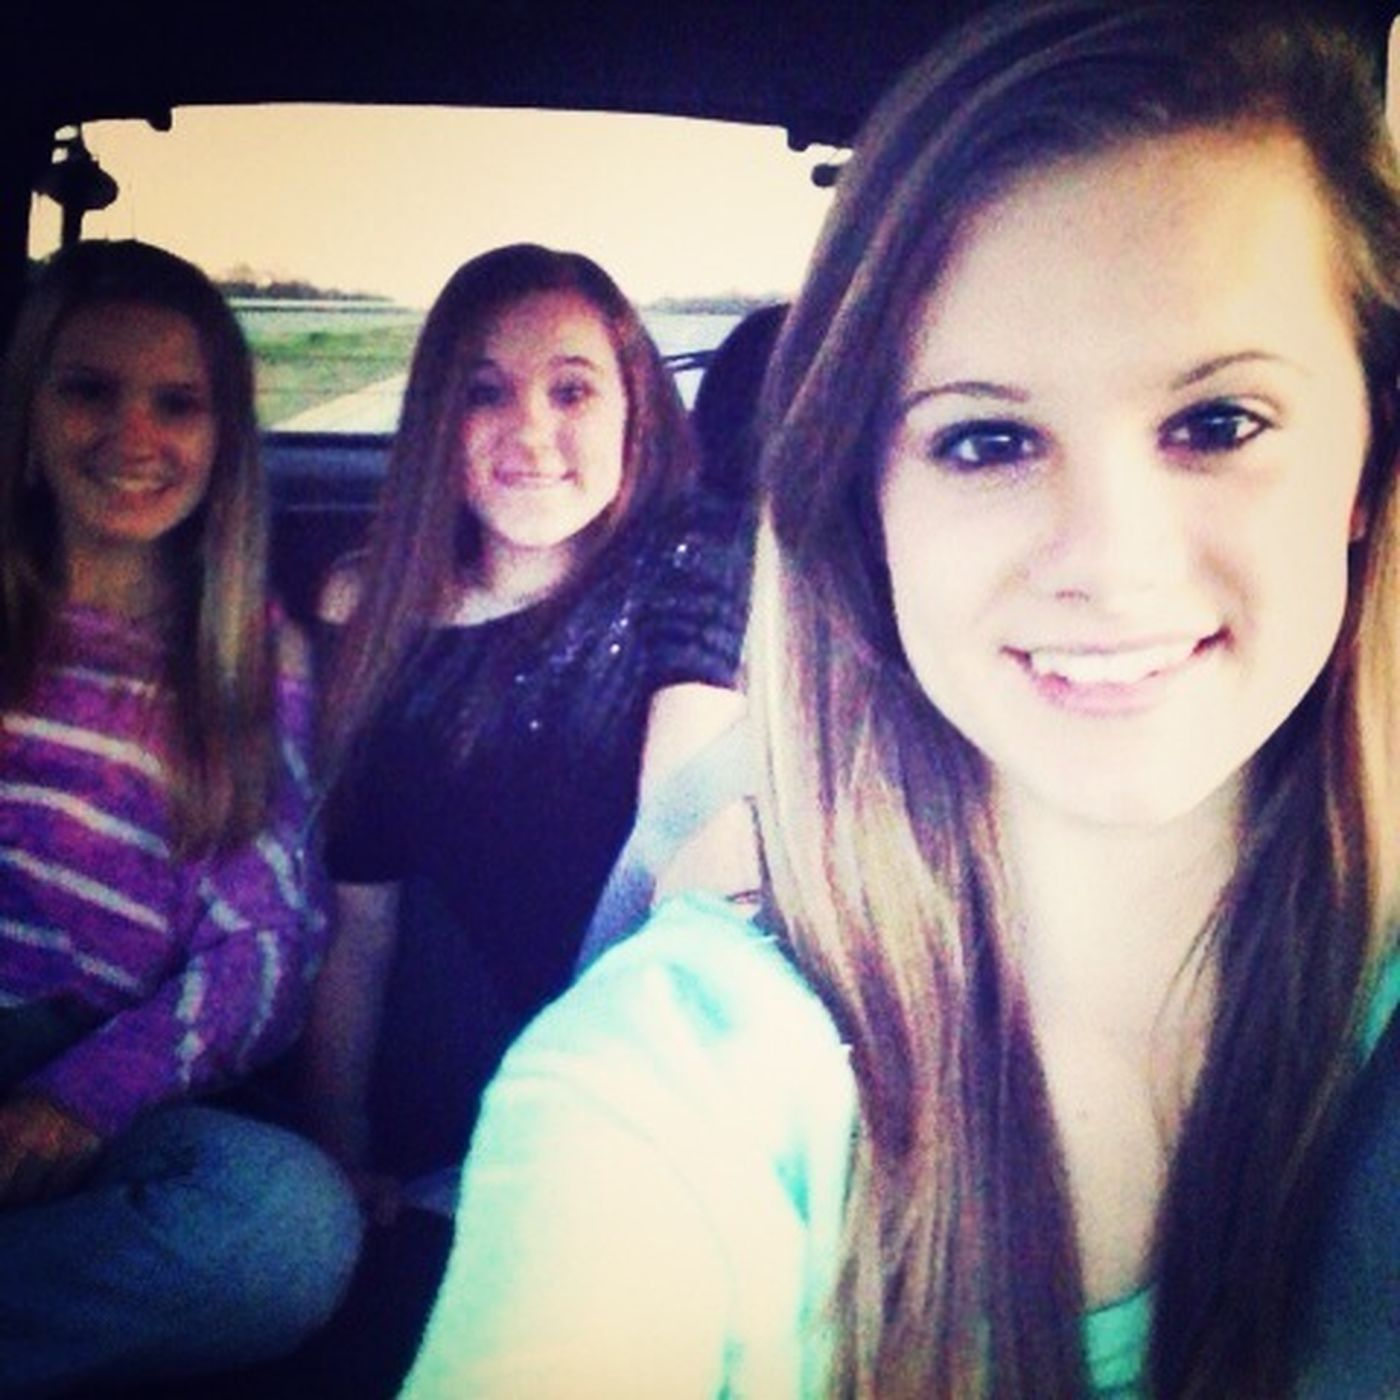 Love These Girls!